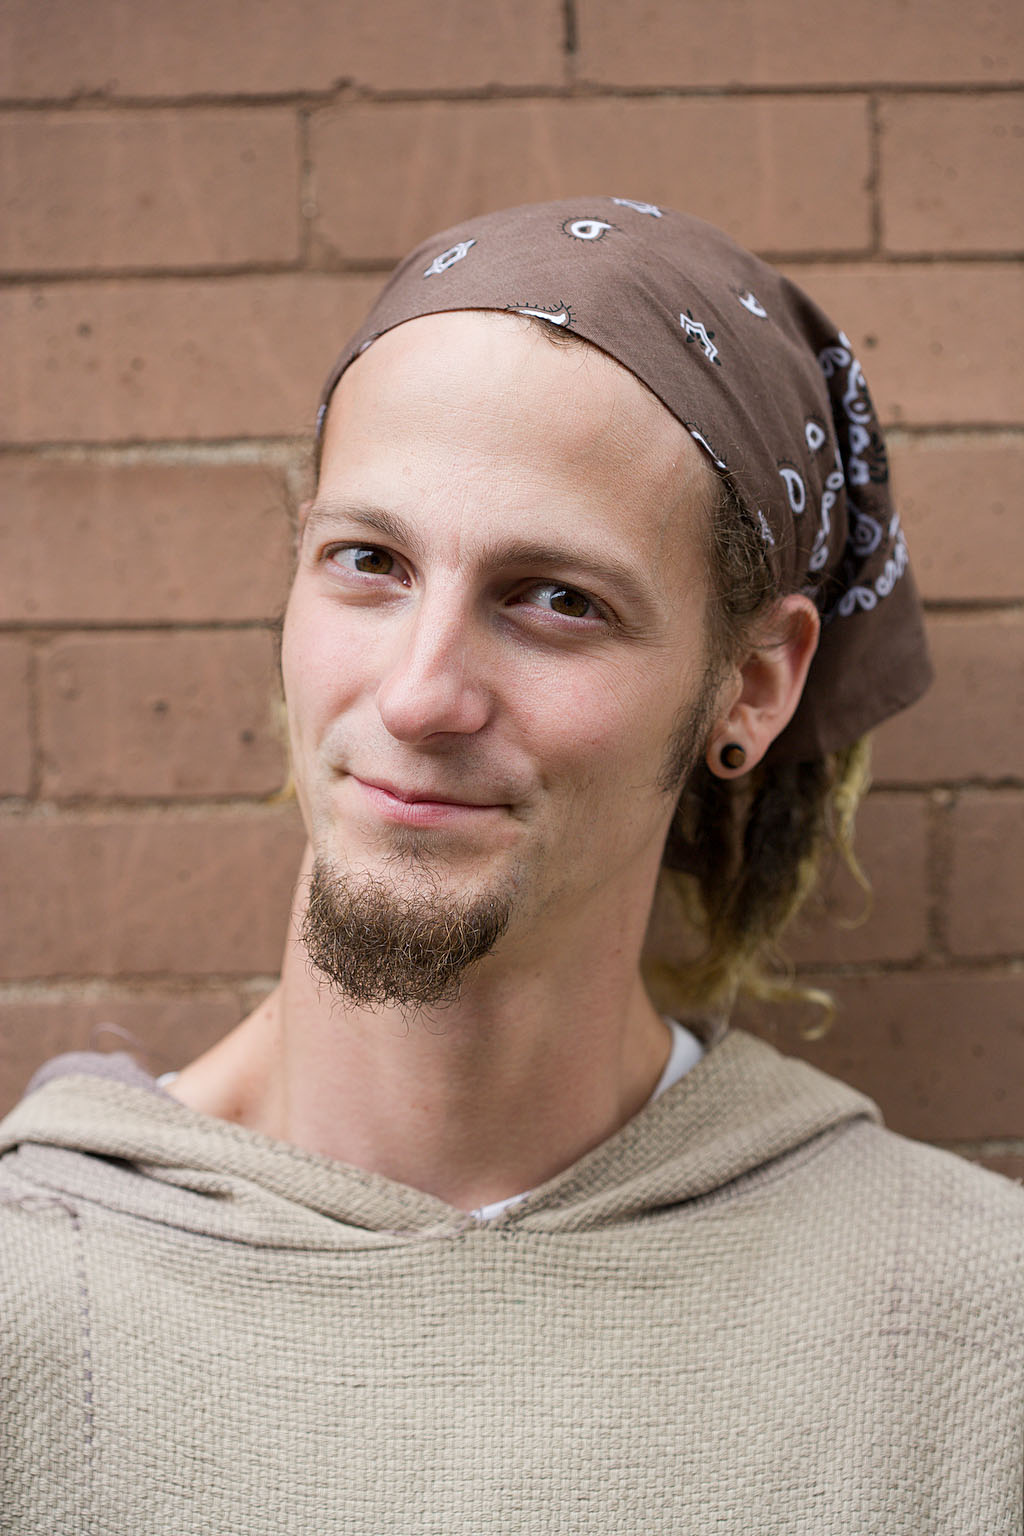 Christianity Today: New Monasticism. Camden House (Chris and Cassie Haw); and The Simple Way (Shane Claiborne).